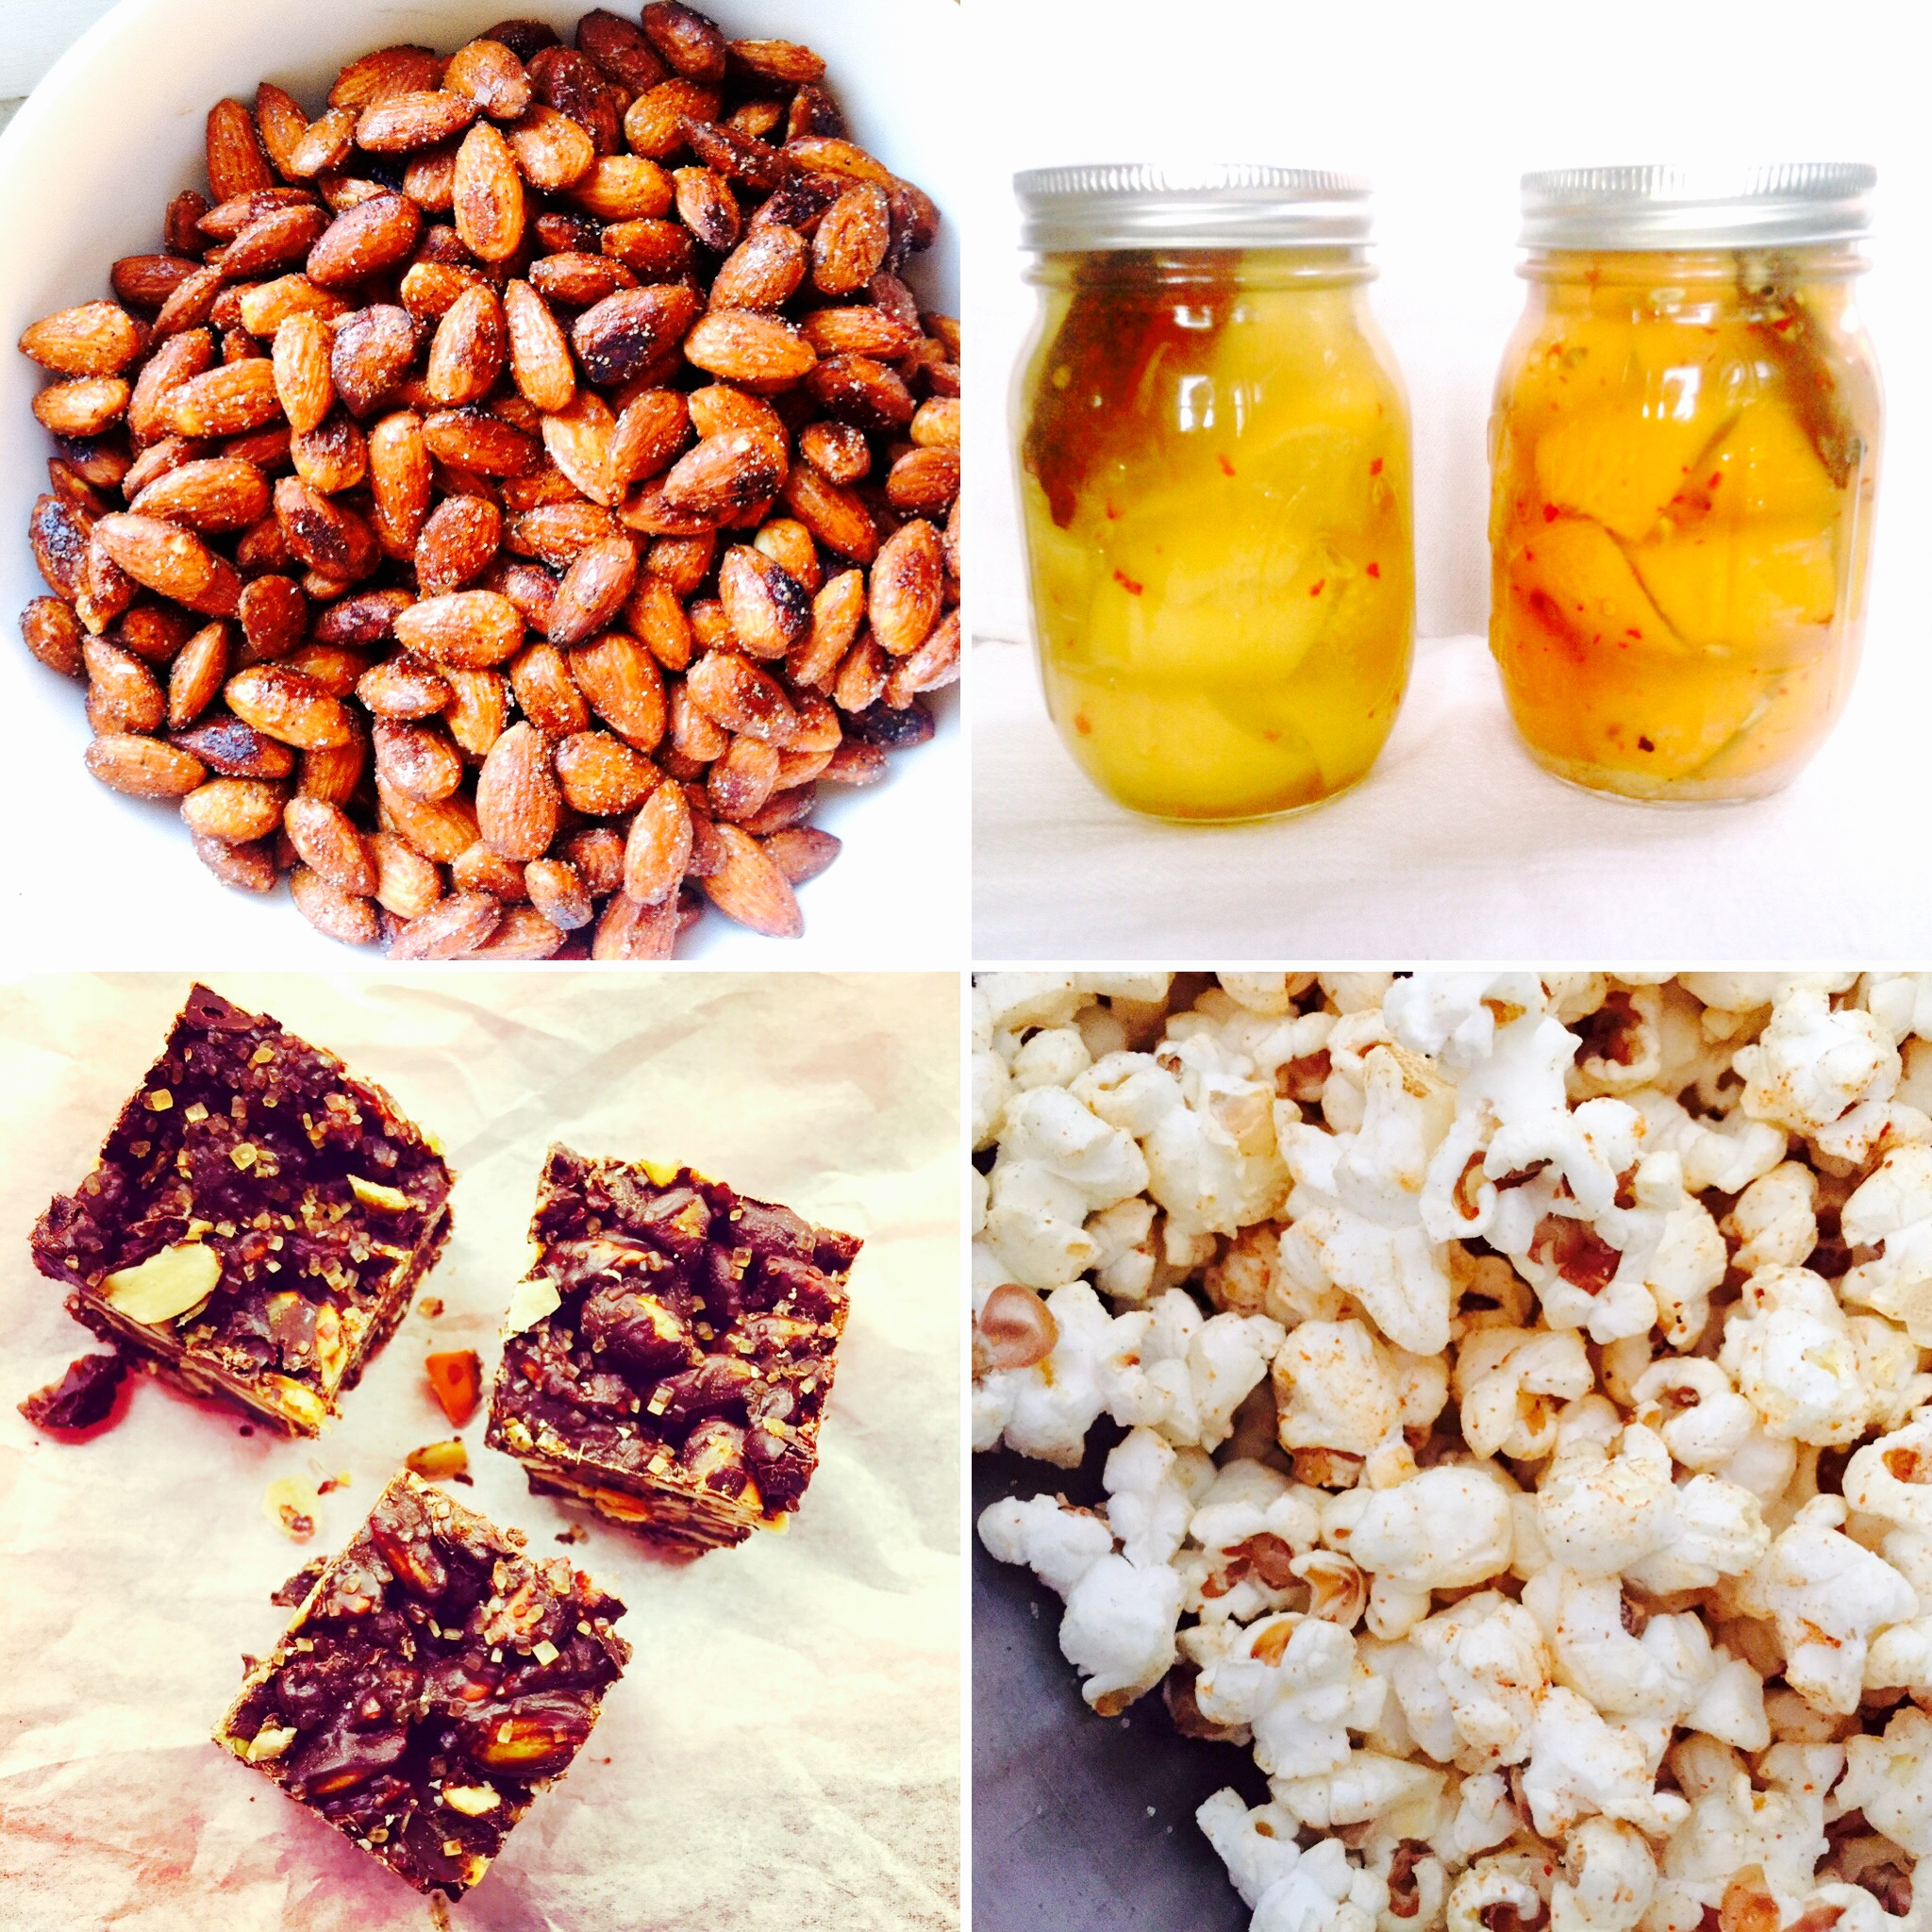 Clockwise from top left: Spiced Almonds, Preserved Lemons, Sambar Curry Popcorn, Chocolate Clusters with Tart Cherries, Ginger and Pumpkin seeds.